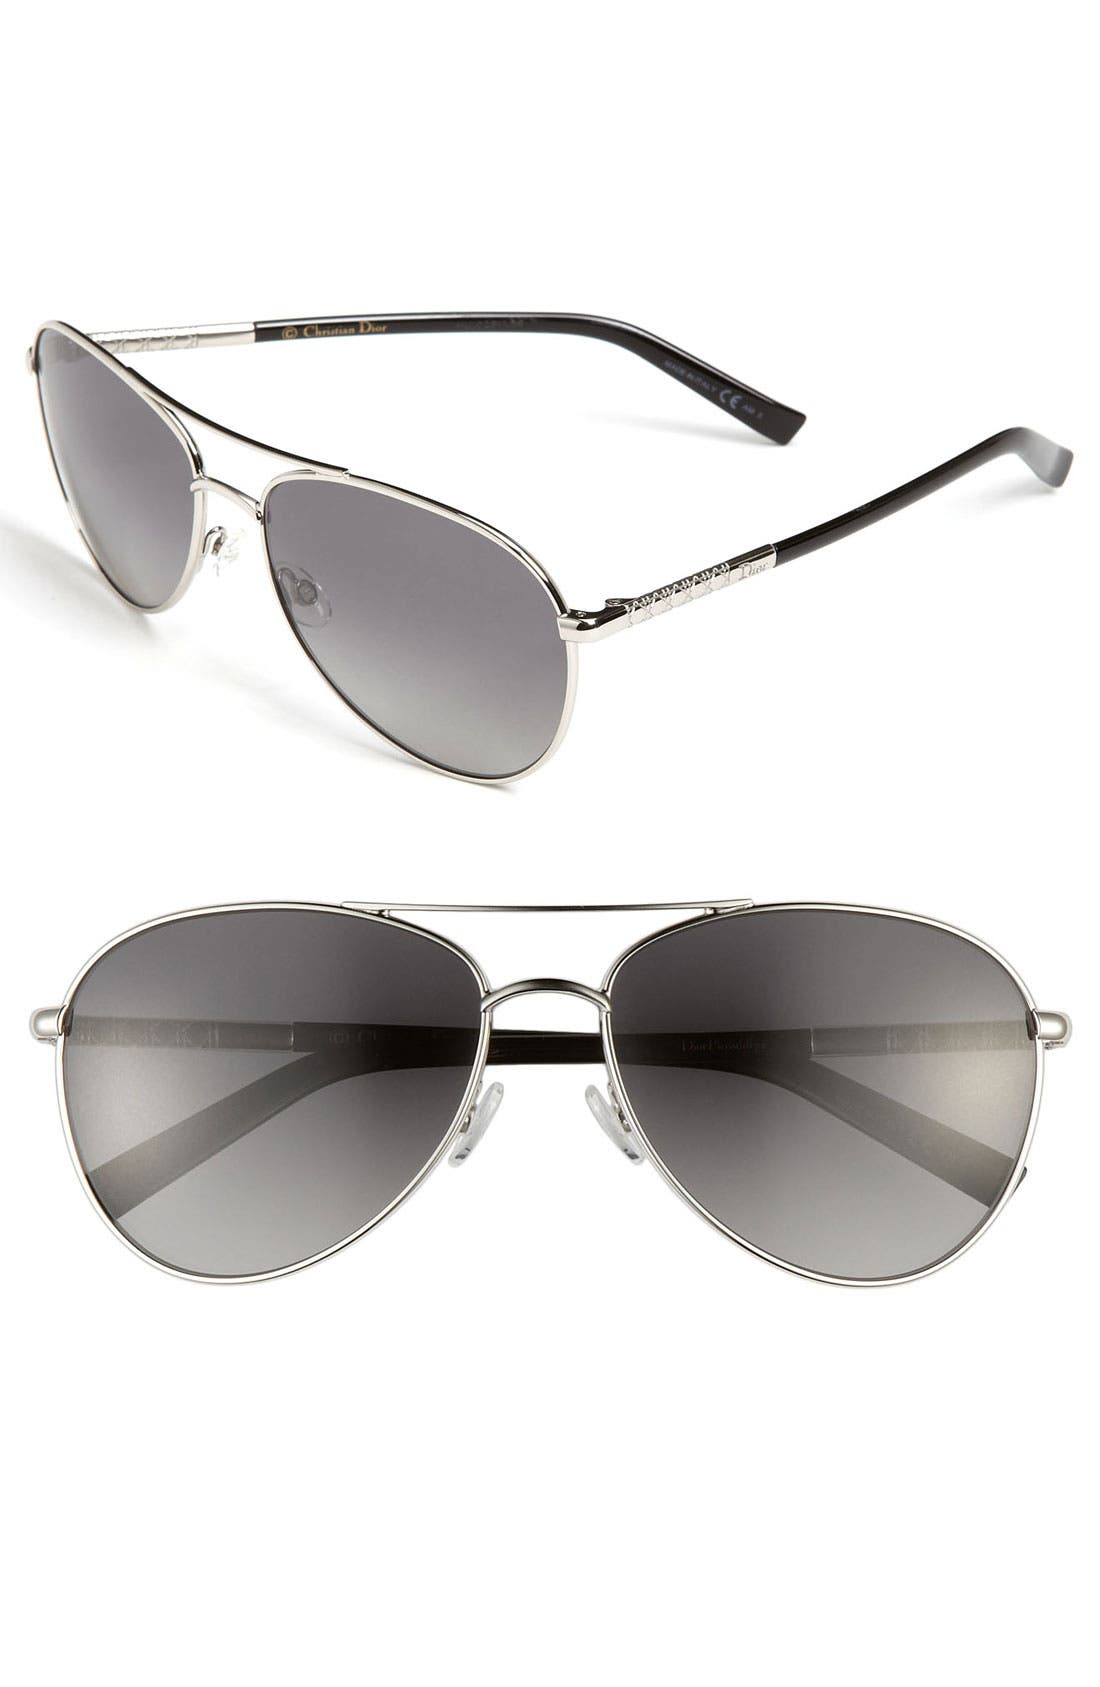 Alternate Image 1 Selected - Dior 'Picadilly 2' 59mm Polarized Metal Aviator Sunglasses